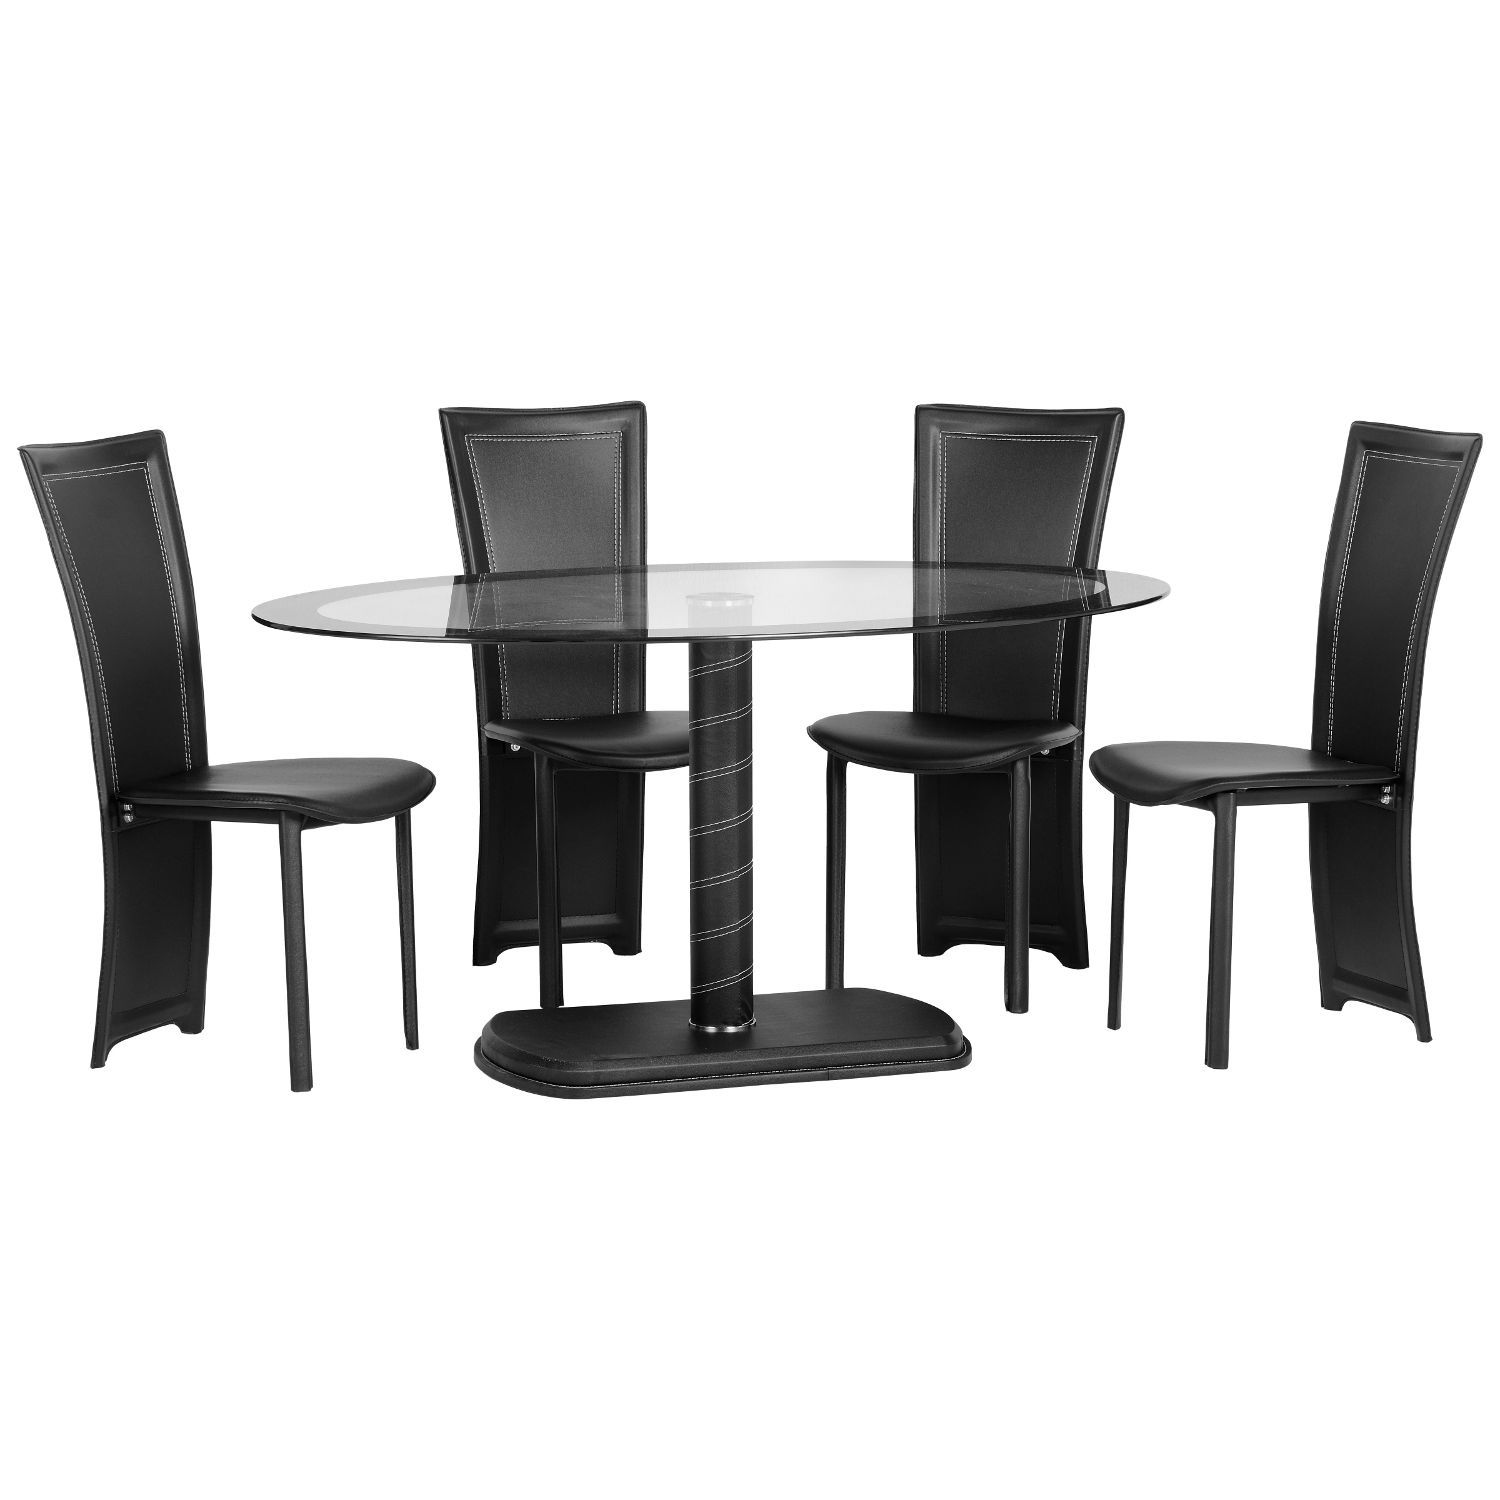 Cameo 4 Seater Oval Dining Set  Next Day Delivery Cameo 4 Seater Stunning Dining Room Furniture Ireland Design Inspiration